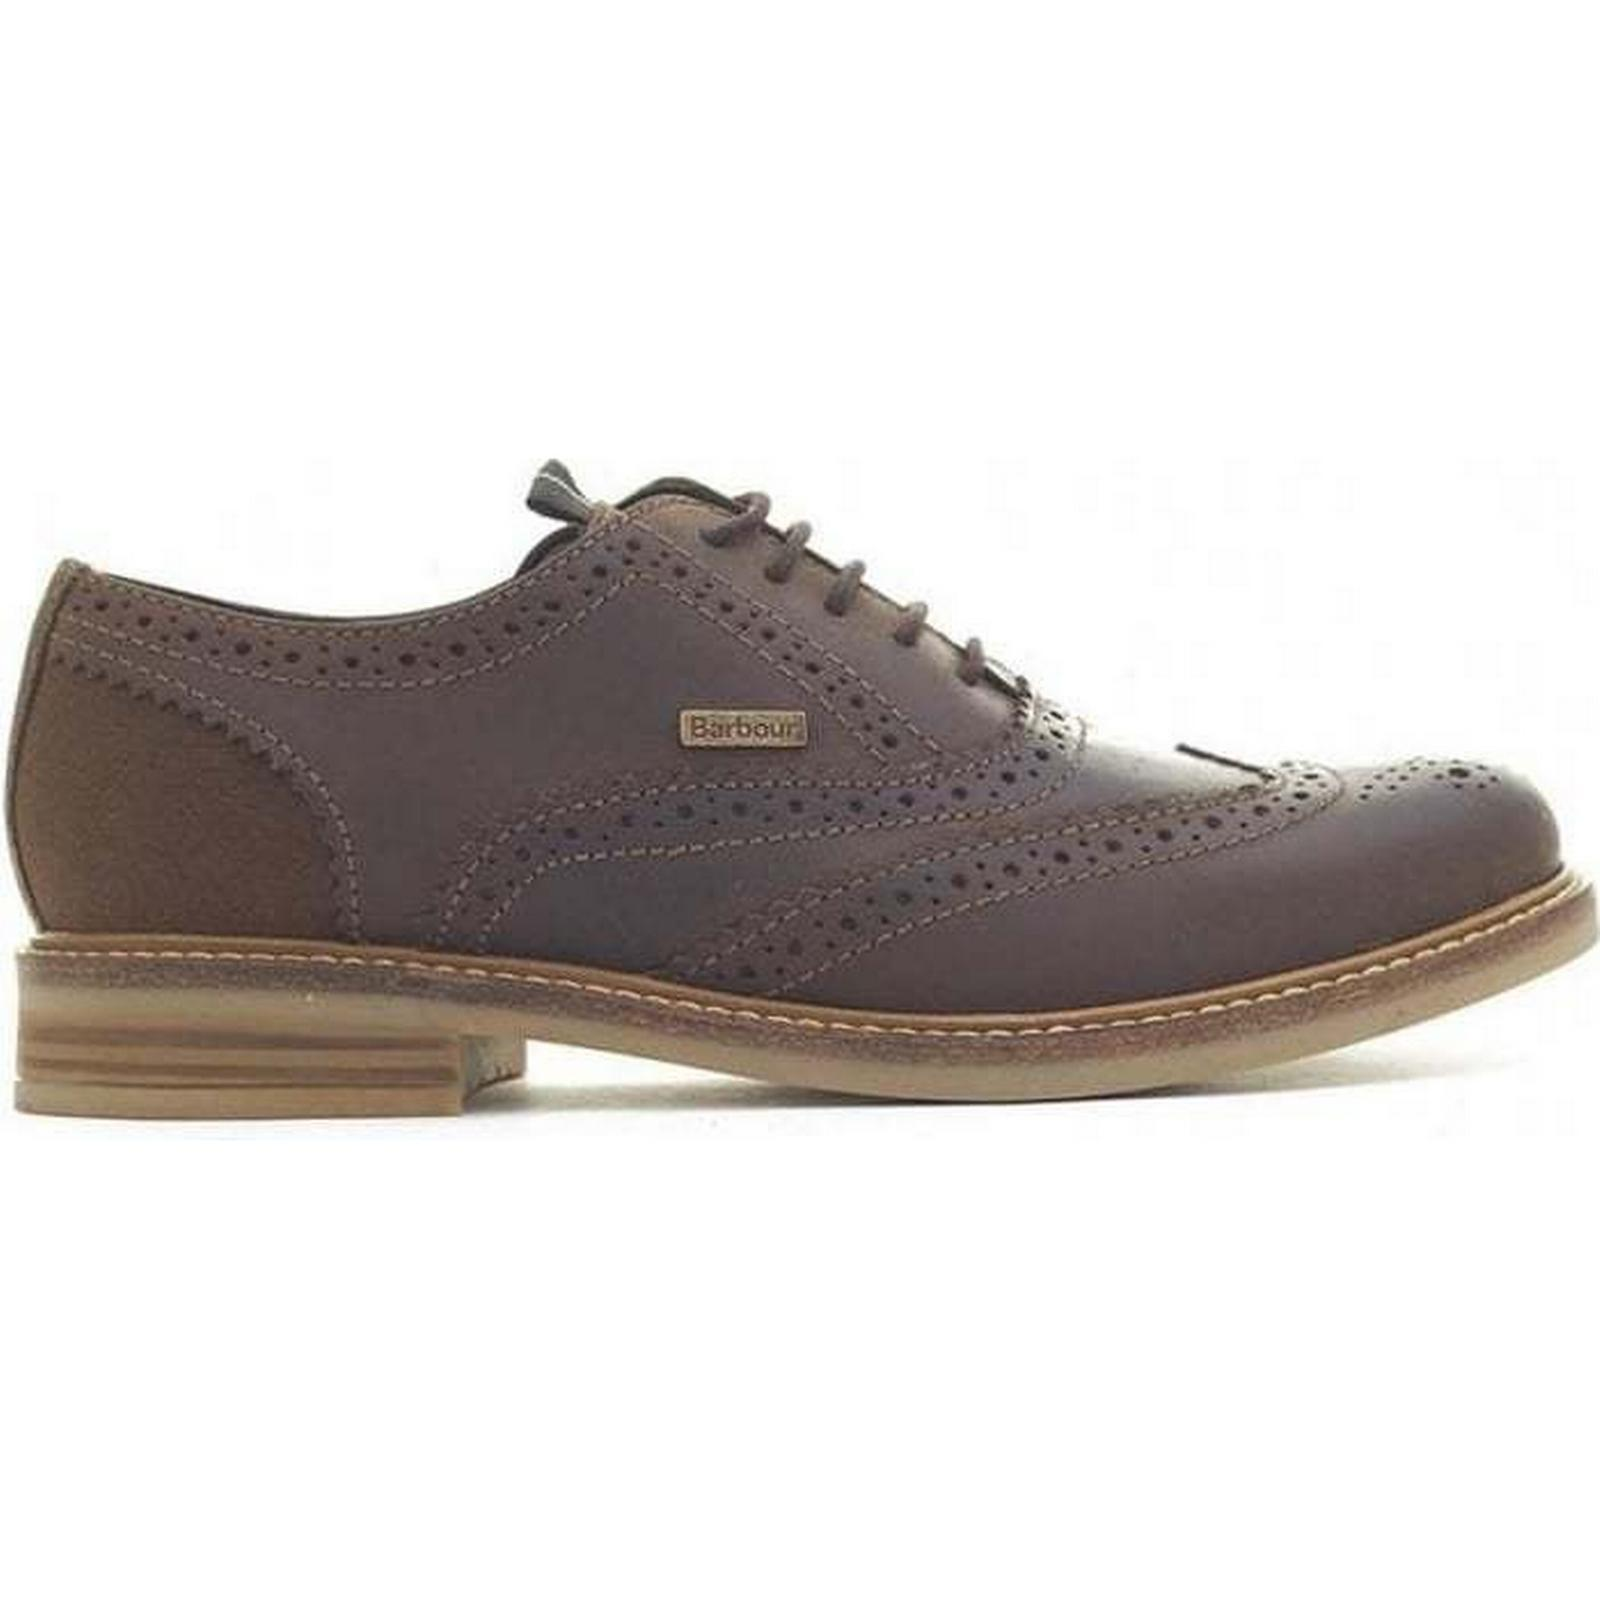 Barbour BROWN, Redcar Oxford Brogues Colour: BROWN, Barbour Size: 8 ceda00